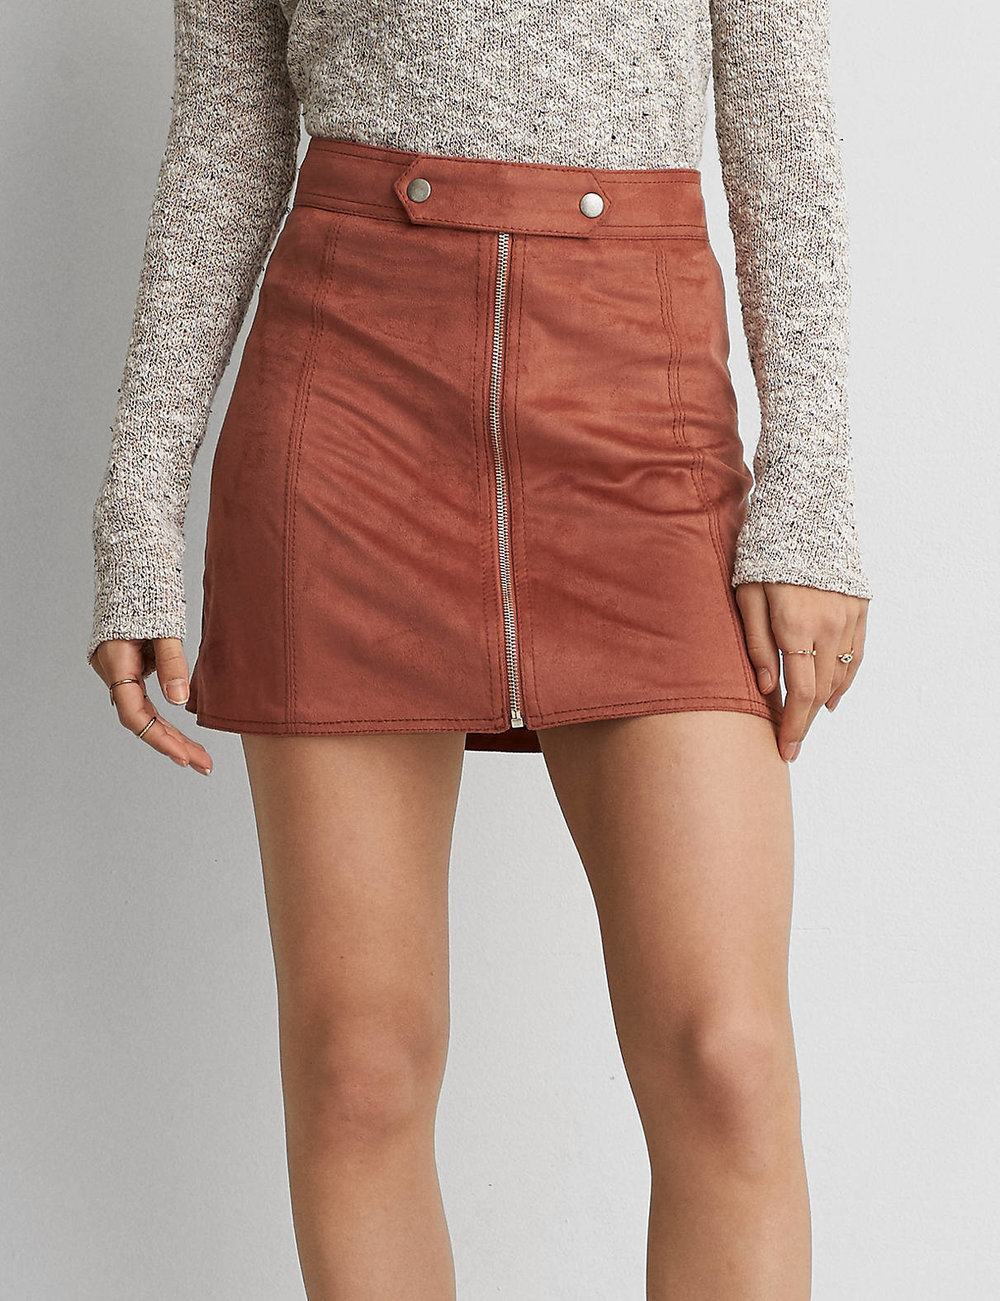 AEO FAUX SUEDE MINI SKIRT $39.95